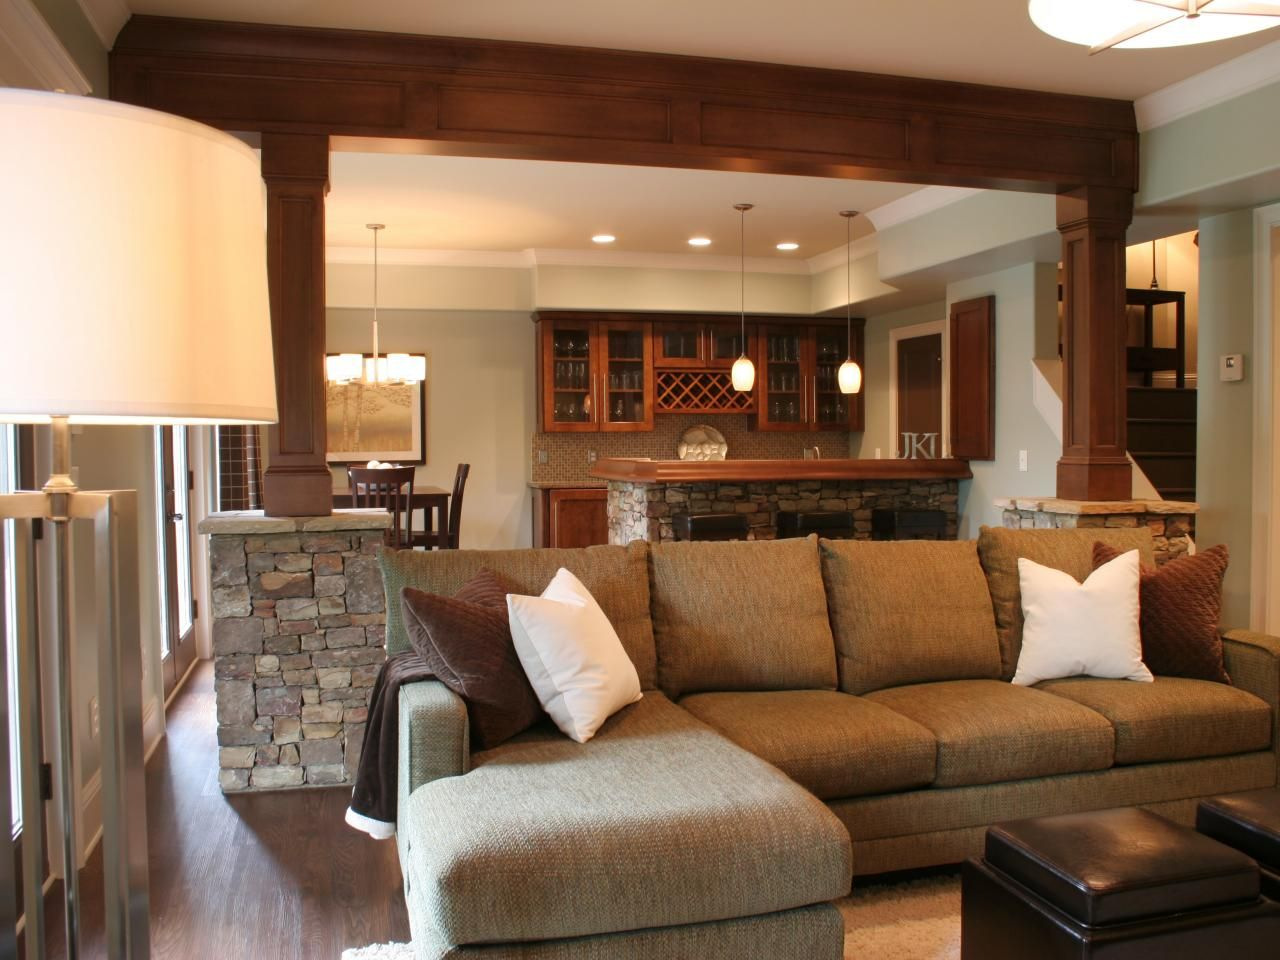 basement design ideas - Finished Basement Design Ideas